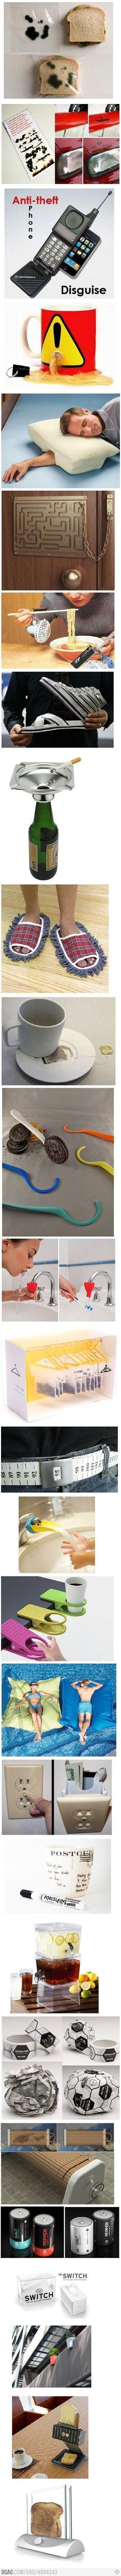 Awesome inventions...except why the fuck would you hide a tooth brush in the wall